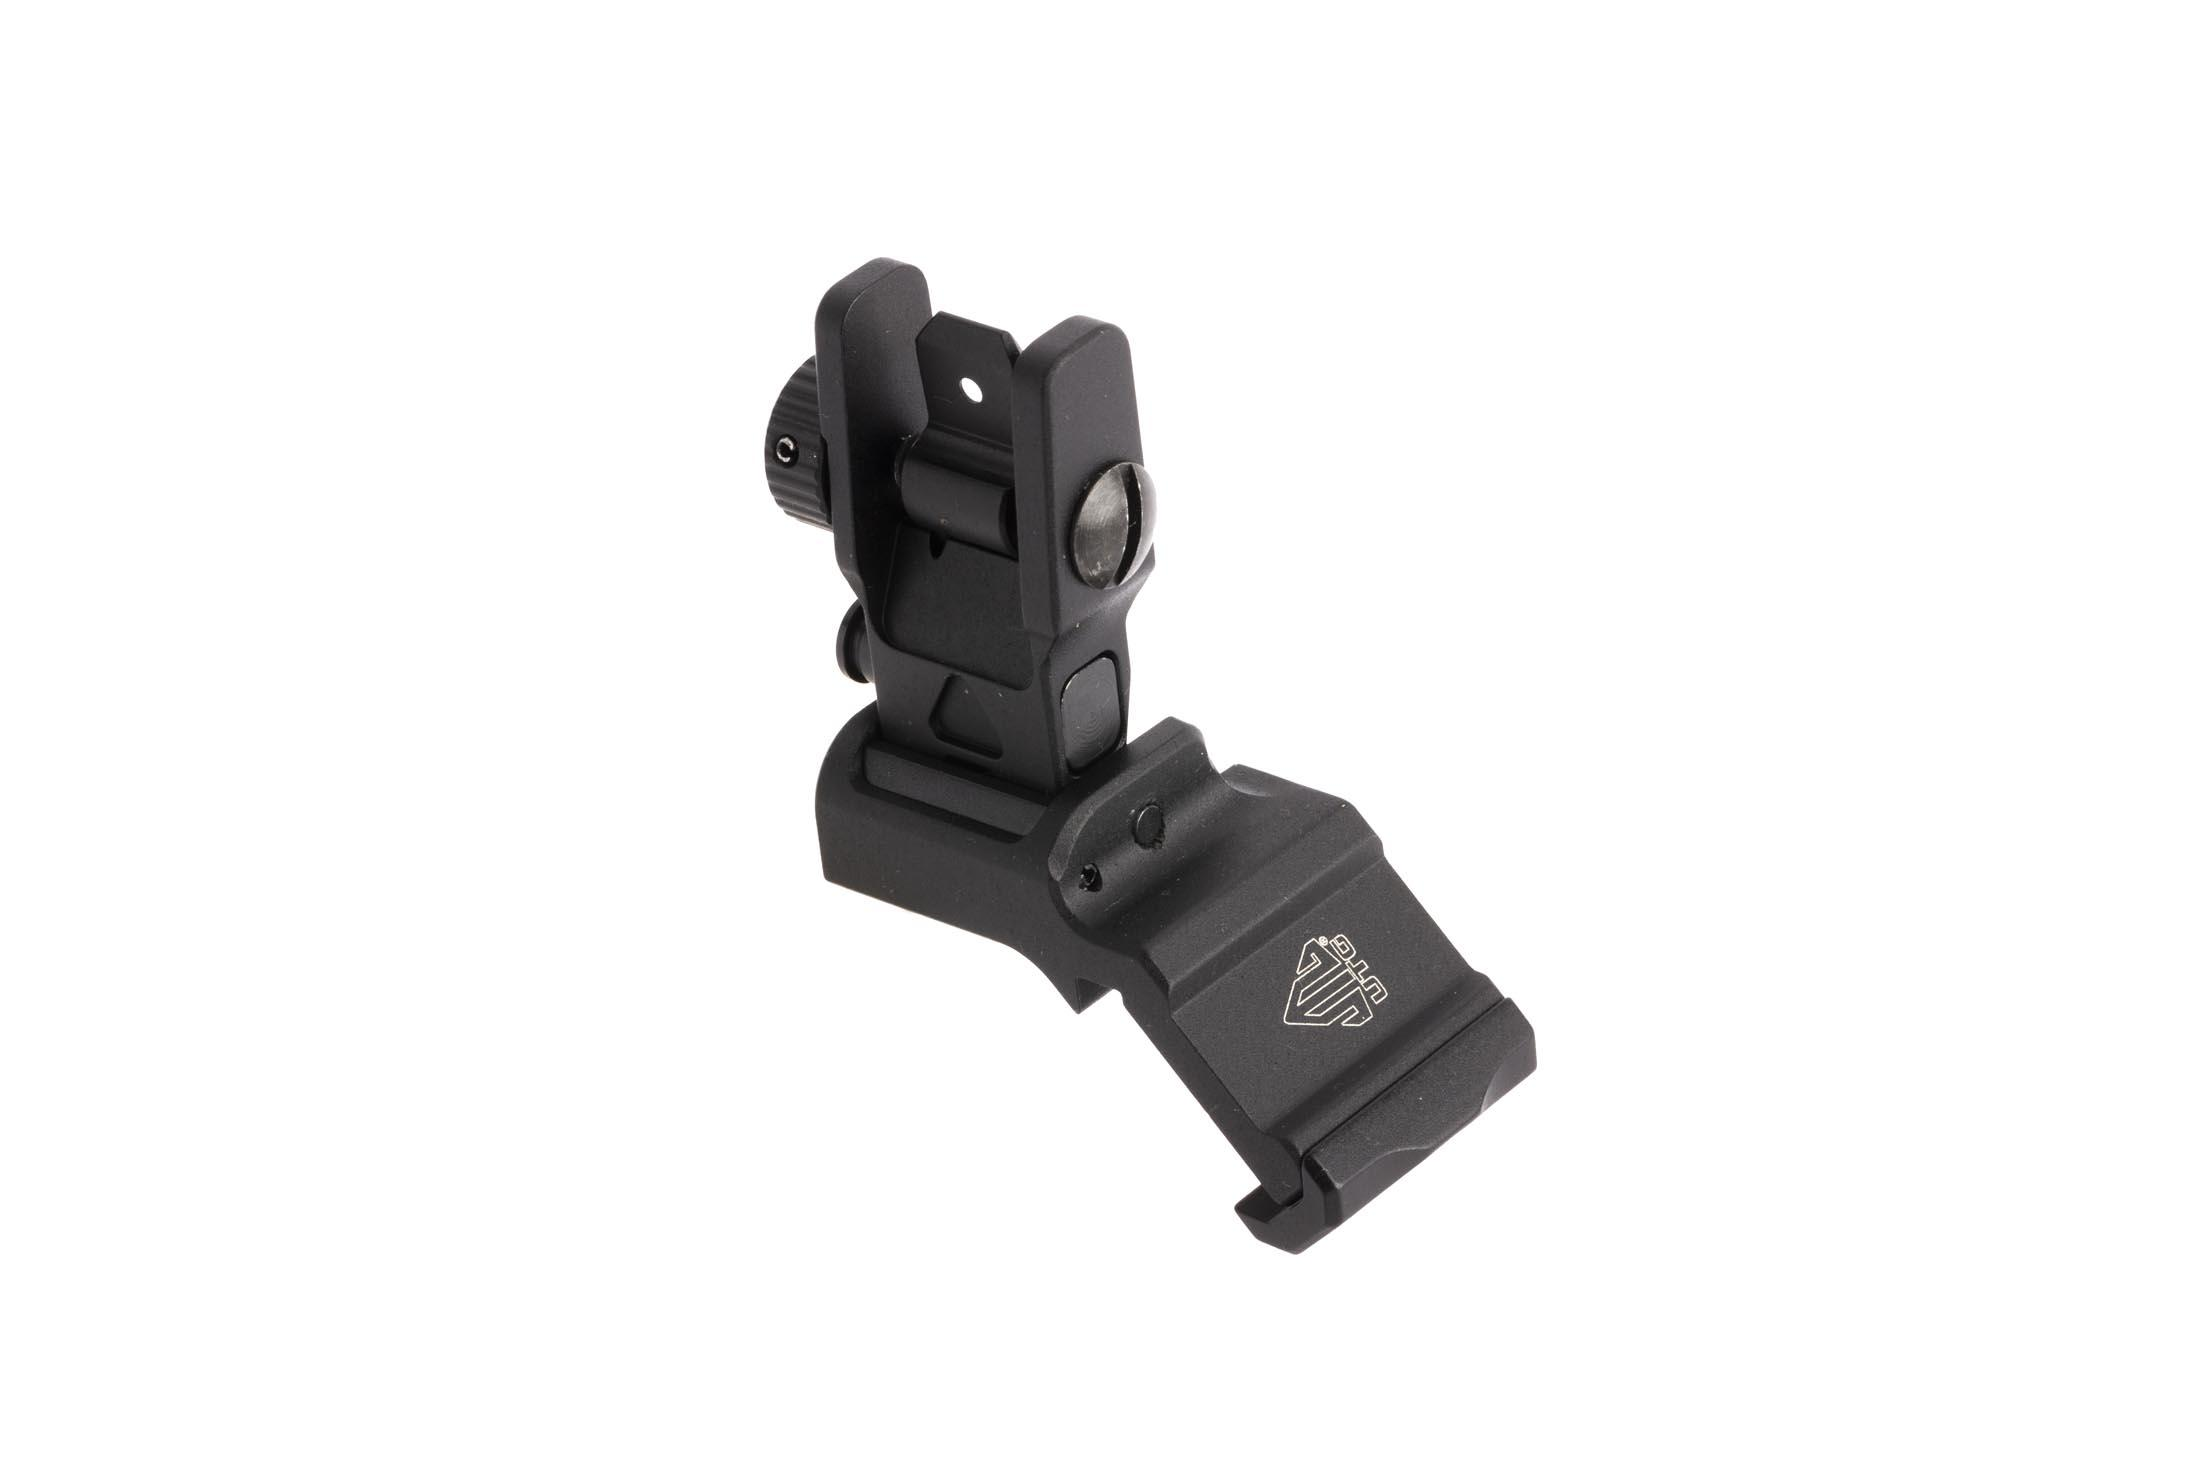 Leapers AccuSync 45-degree offset backup rear iron sight features a tough anodized black finish and tough 6061 construction